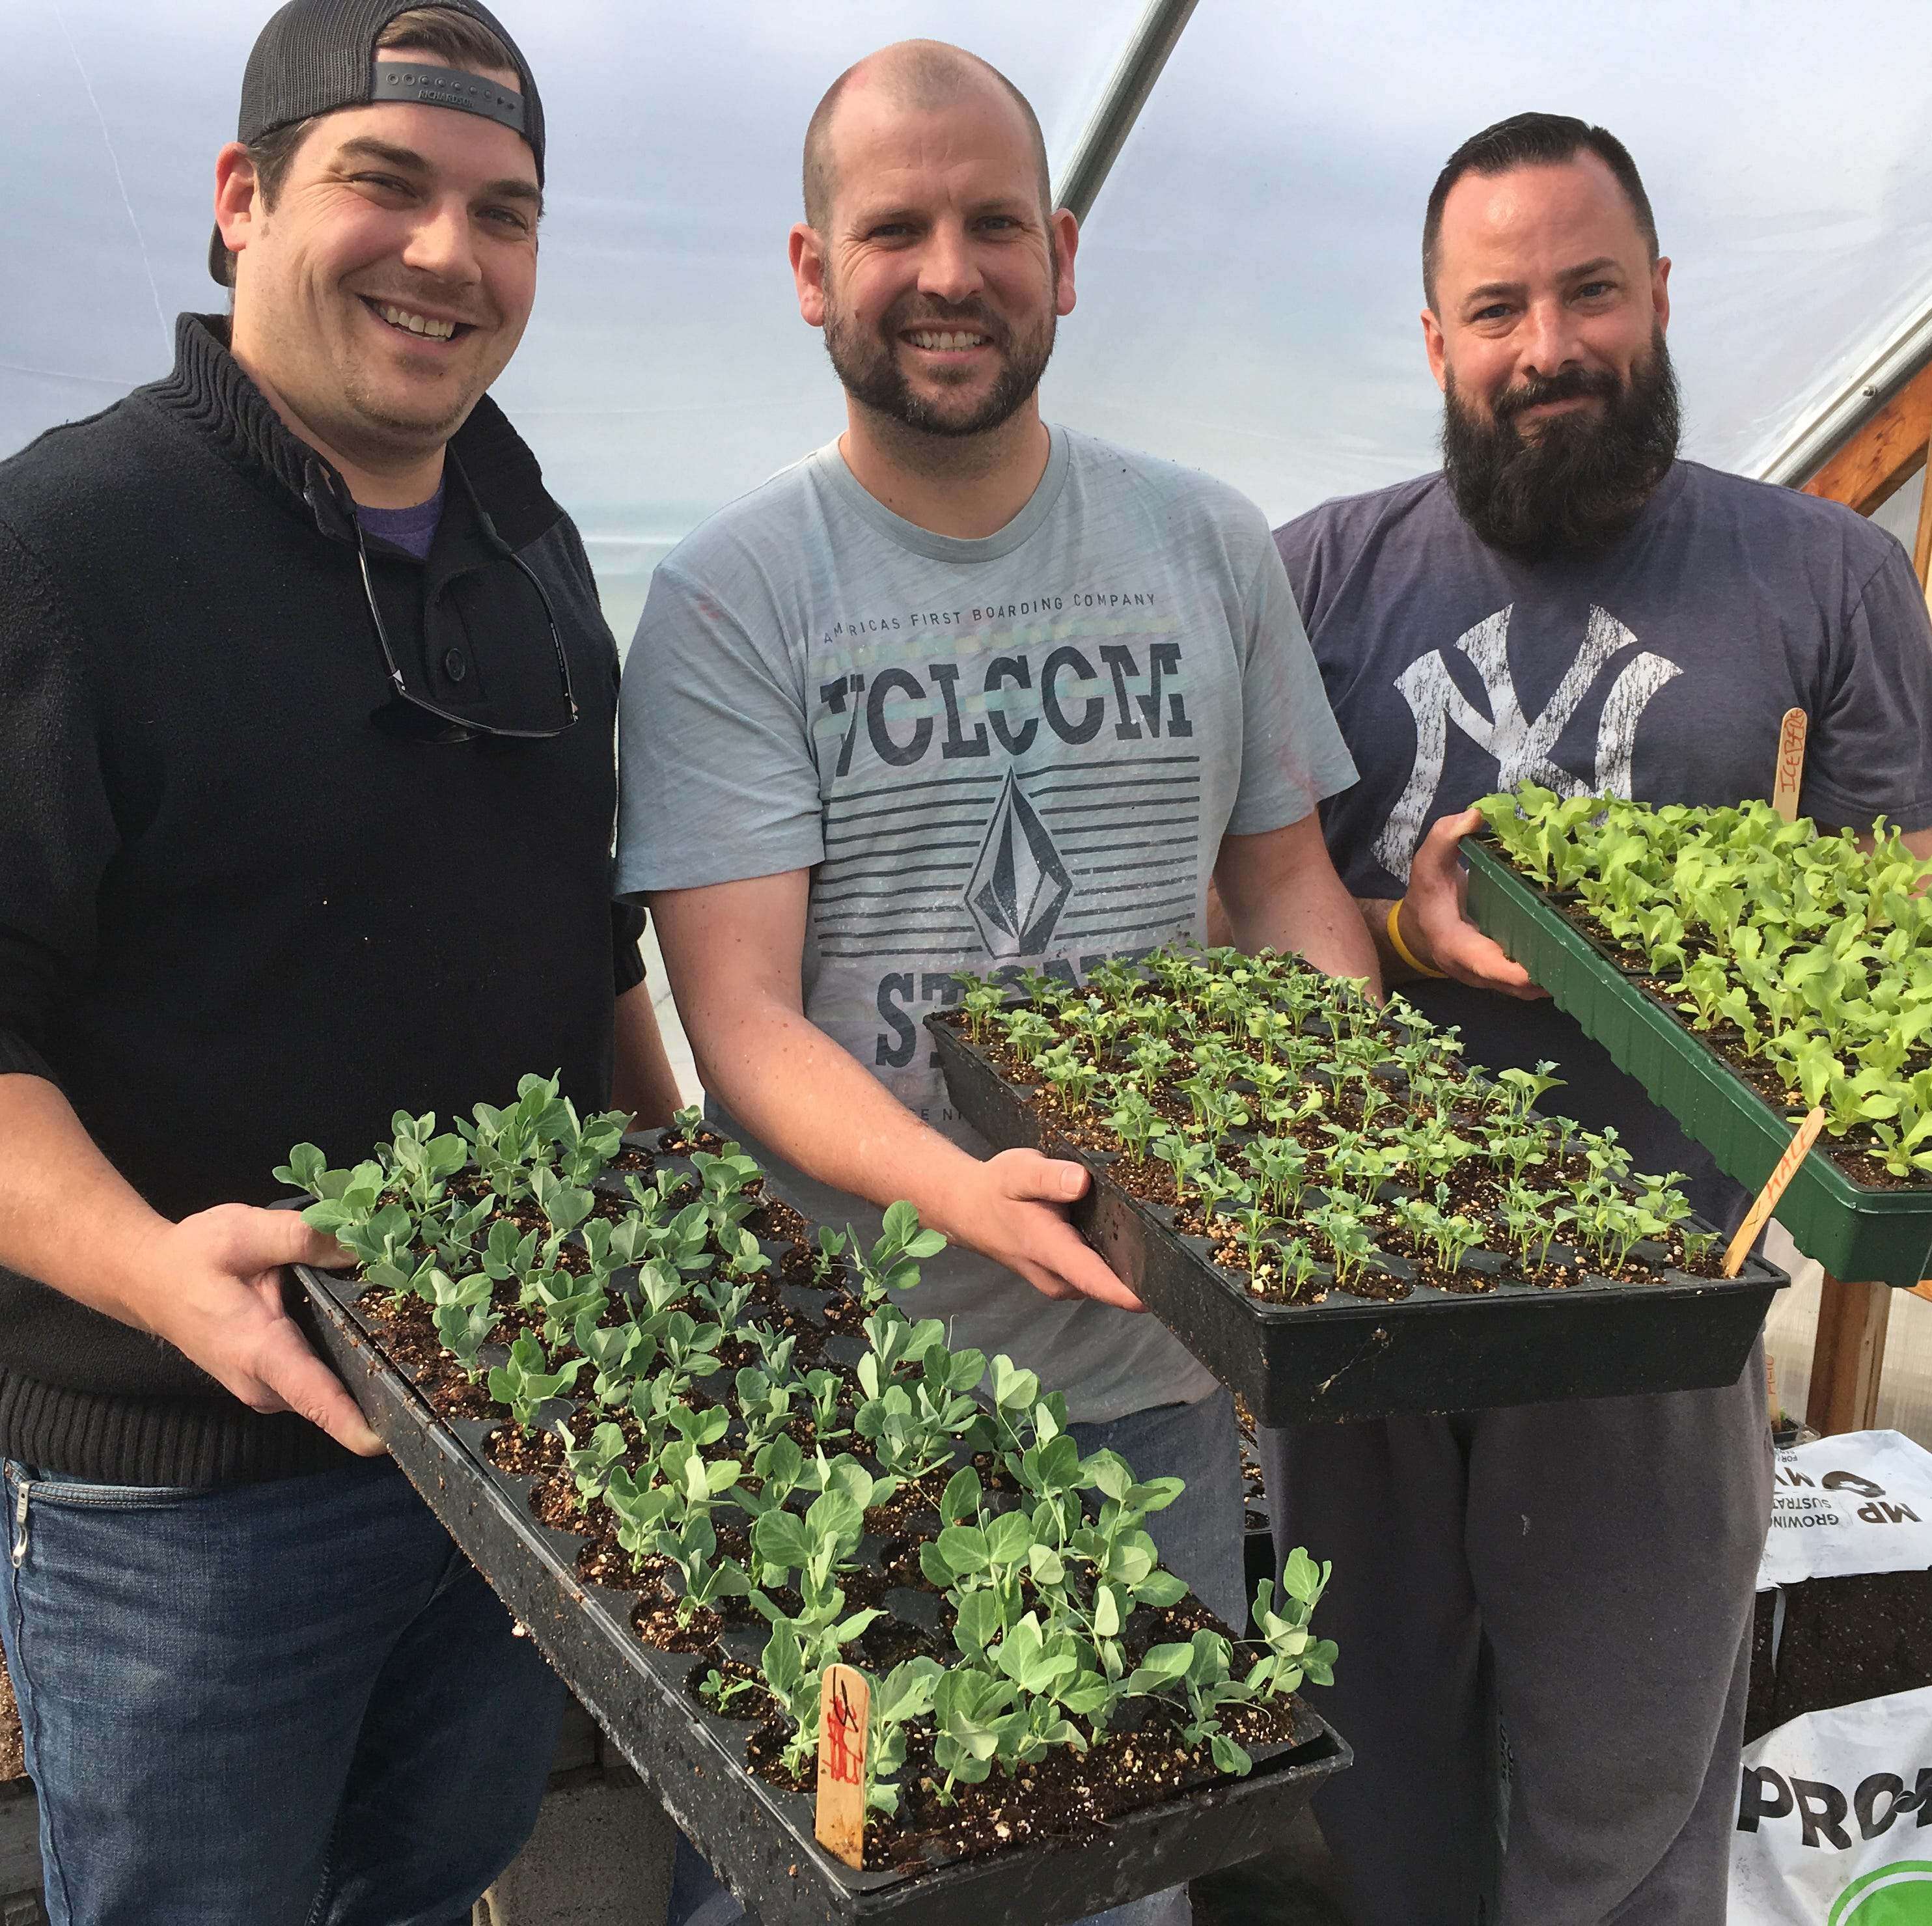 Sprout of Hope: growing gardens to feed others